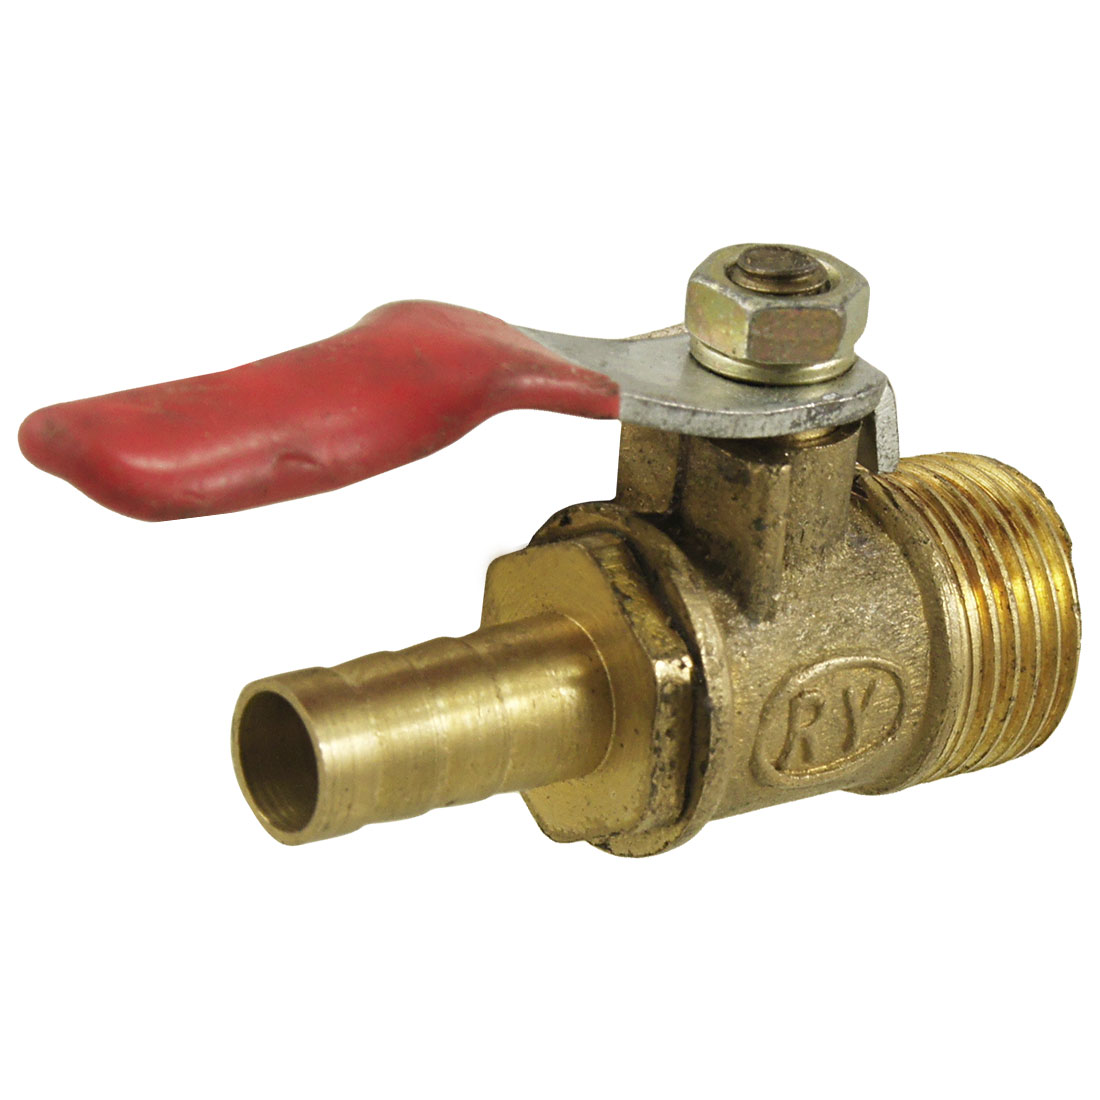 Full Port 16.3mm Male Thread Pneumatic Control Ball Valve